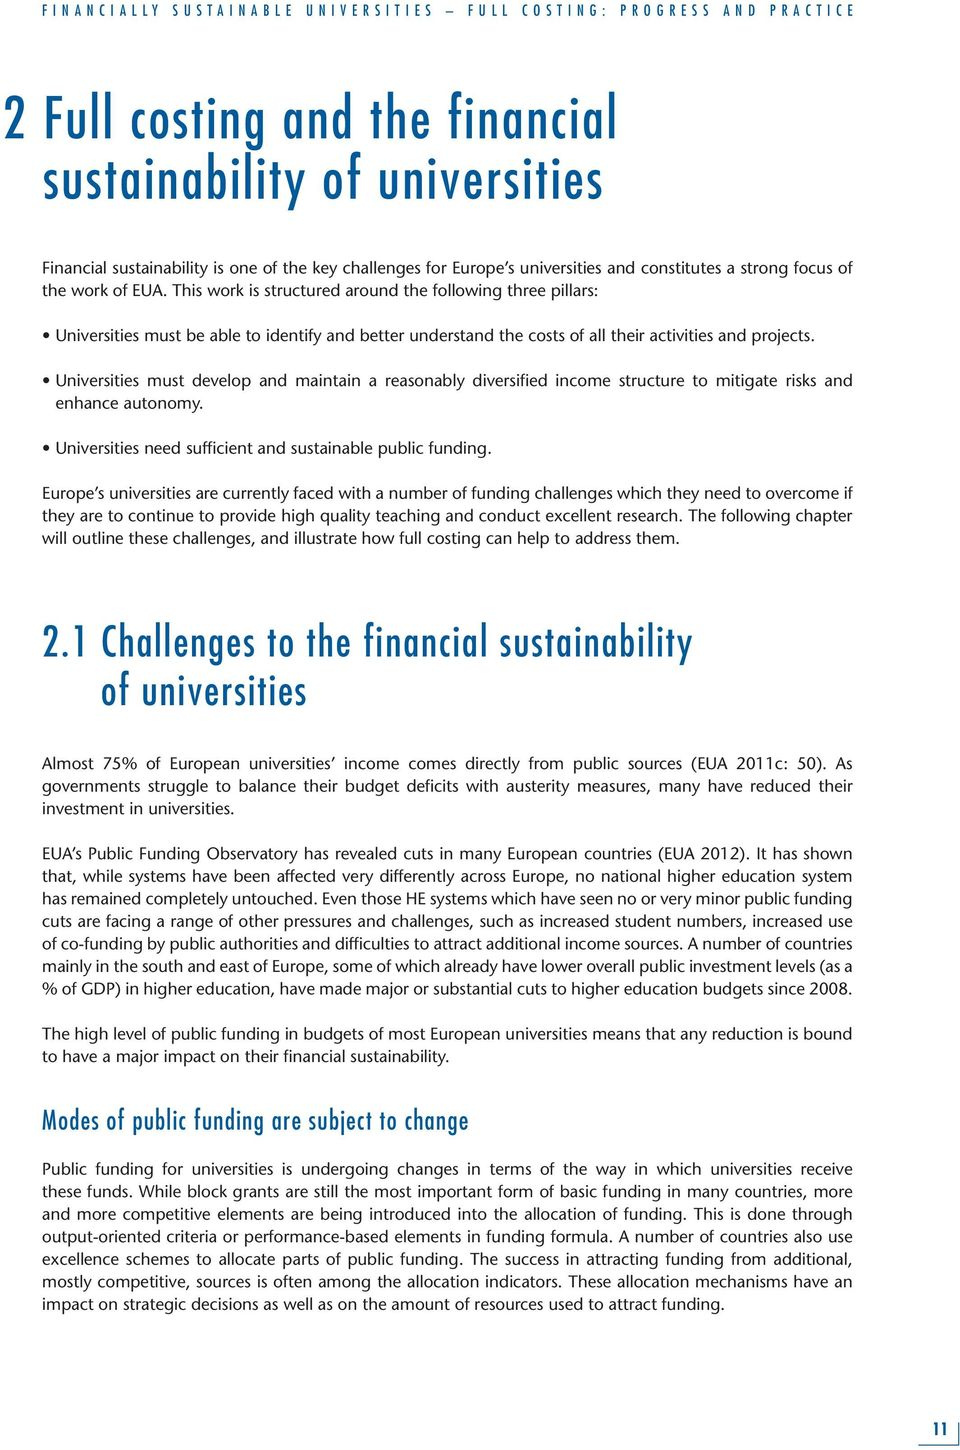 Universities must develop and maintain a reasonably diversified income structure to mitigate risks and enhance autonomy. Universities need sufficient and sustainable public funding.